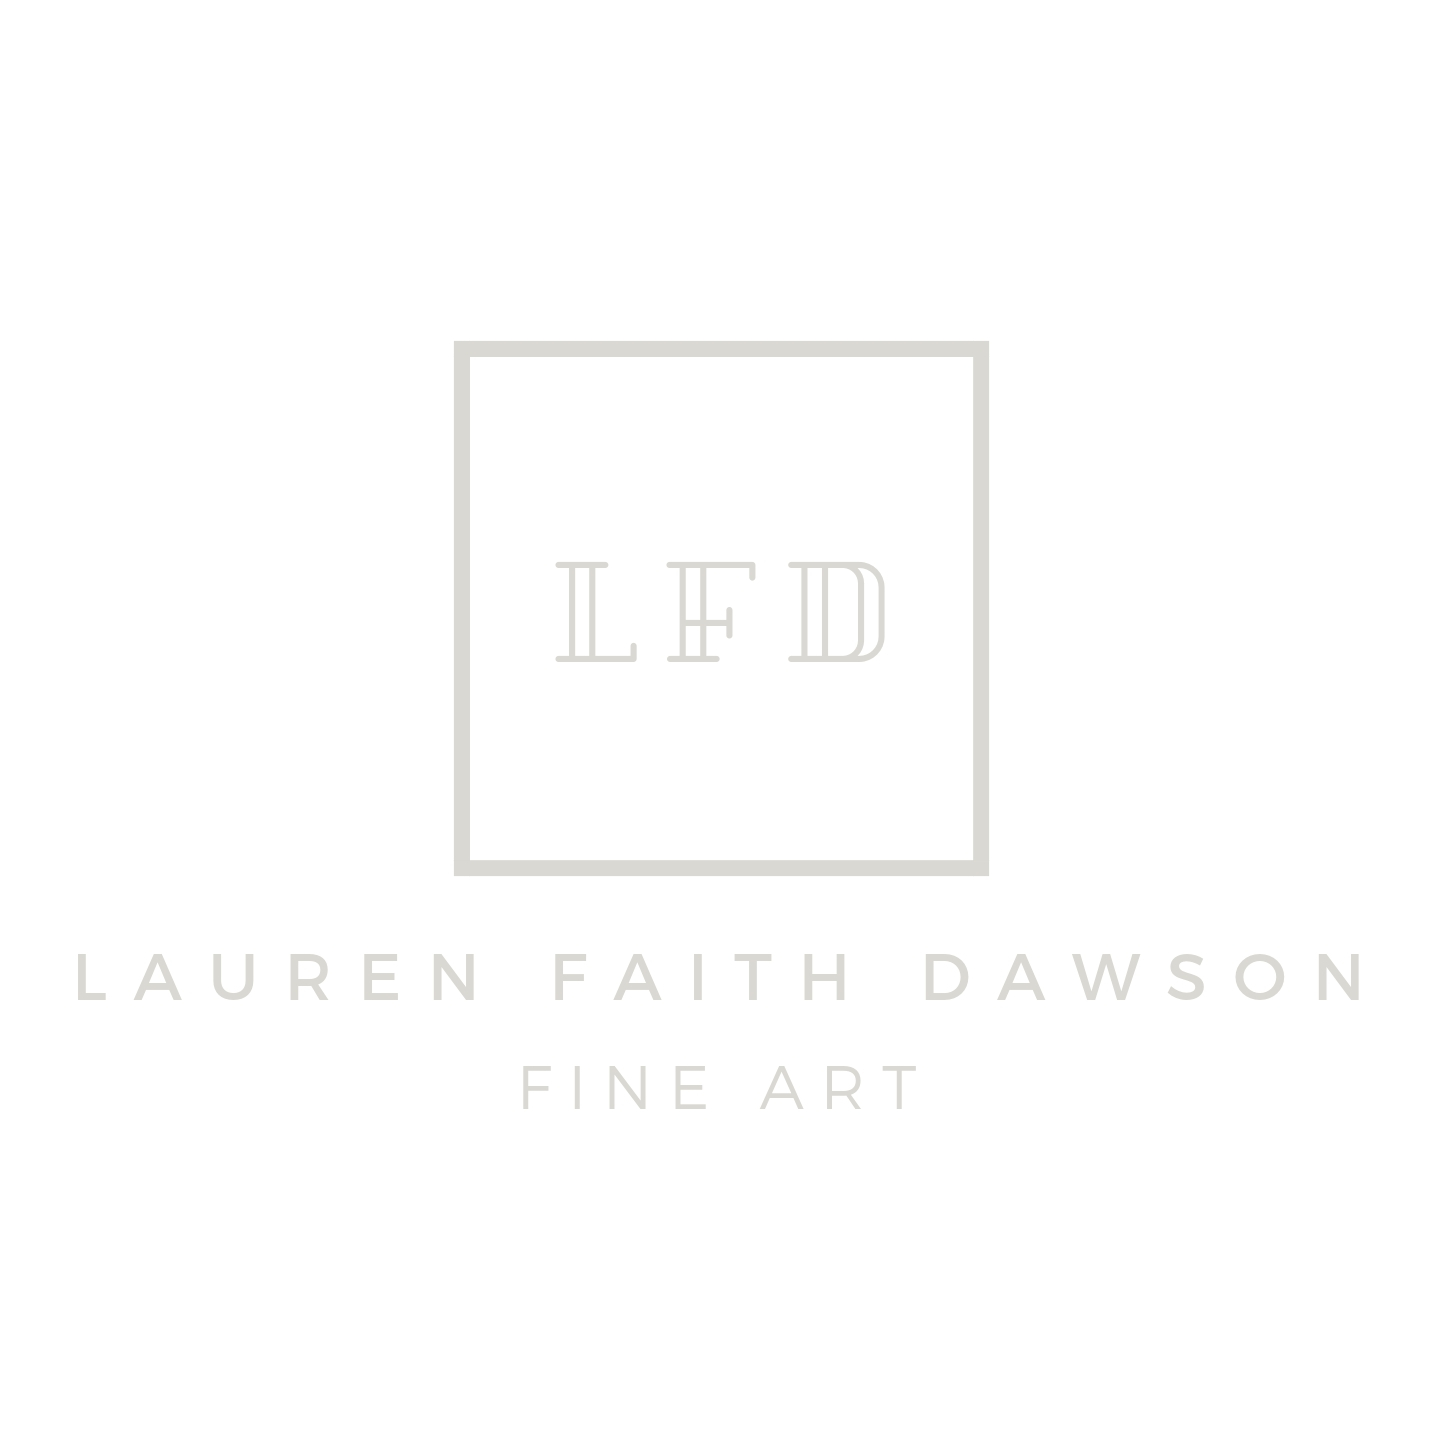 lauren-faith-dawson-fine-art-logo-grey.jpg